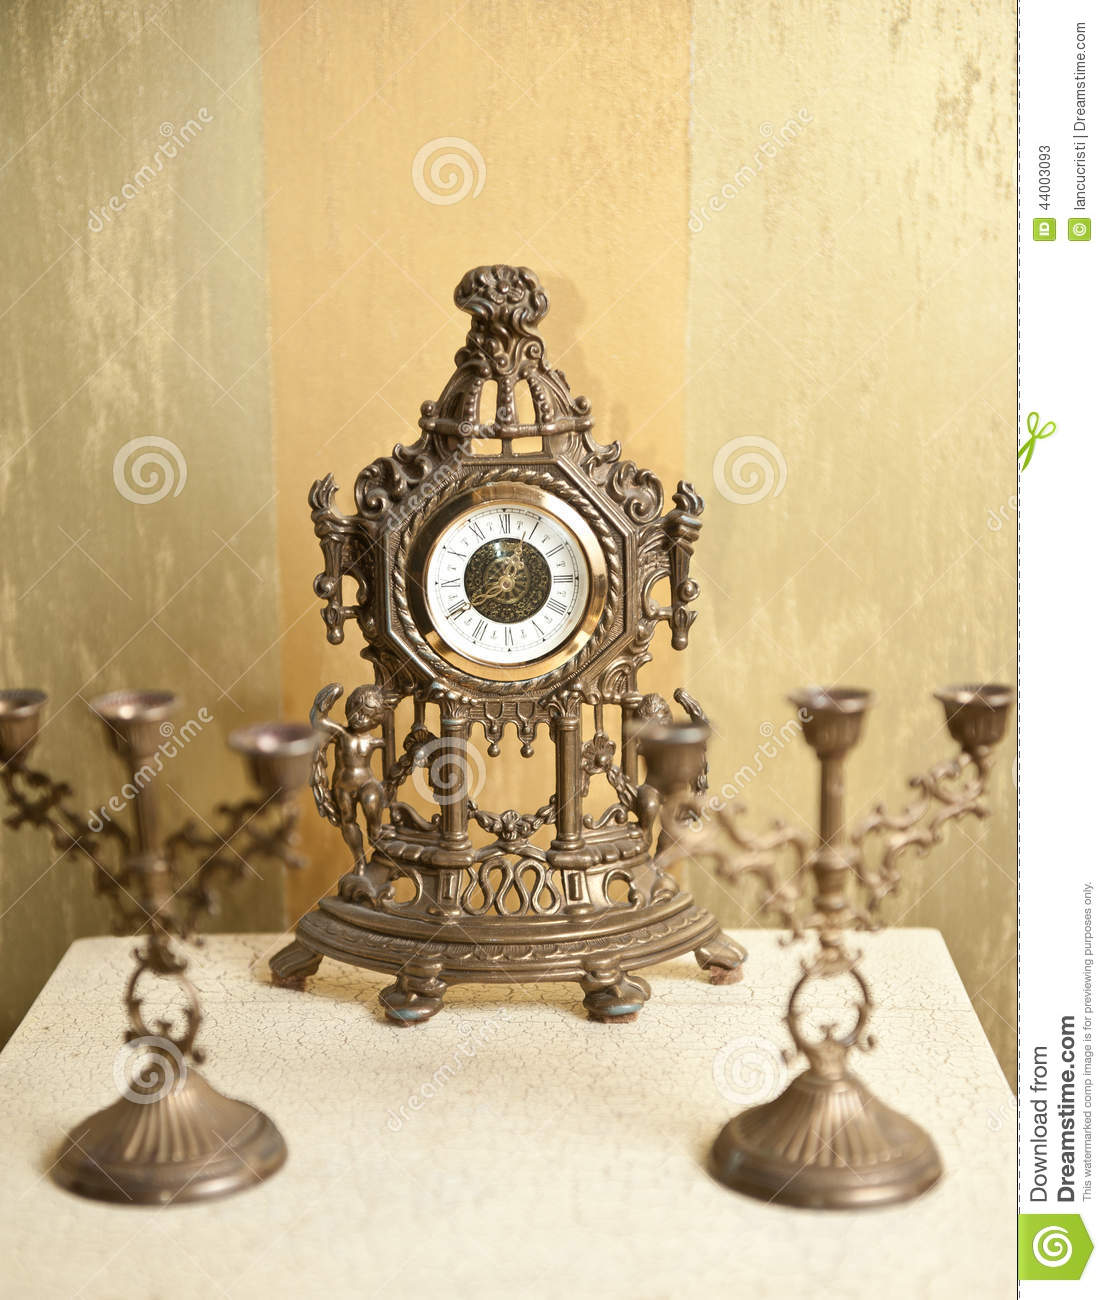 August 2014 Cpo Offers Table Jpg: Golden Vintage Metallic Clock With Two Candlesticks For